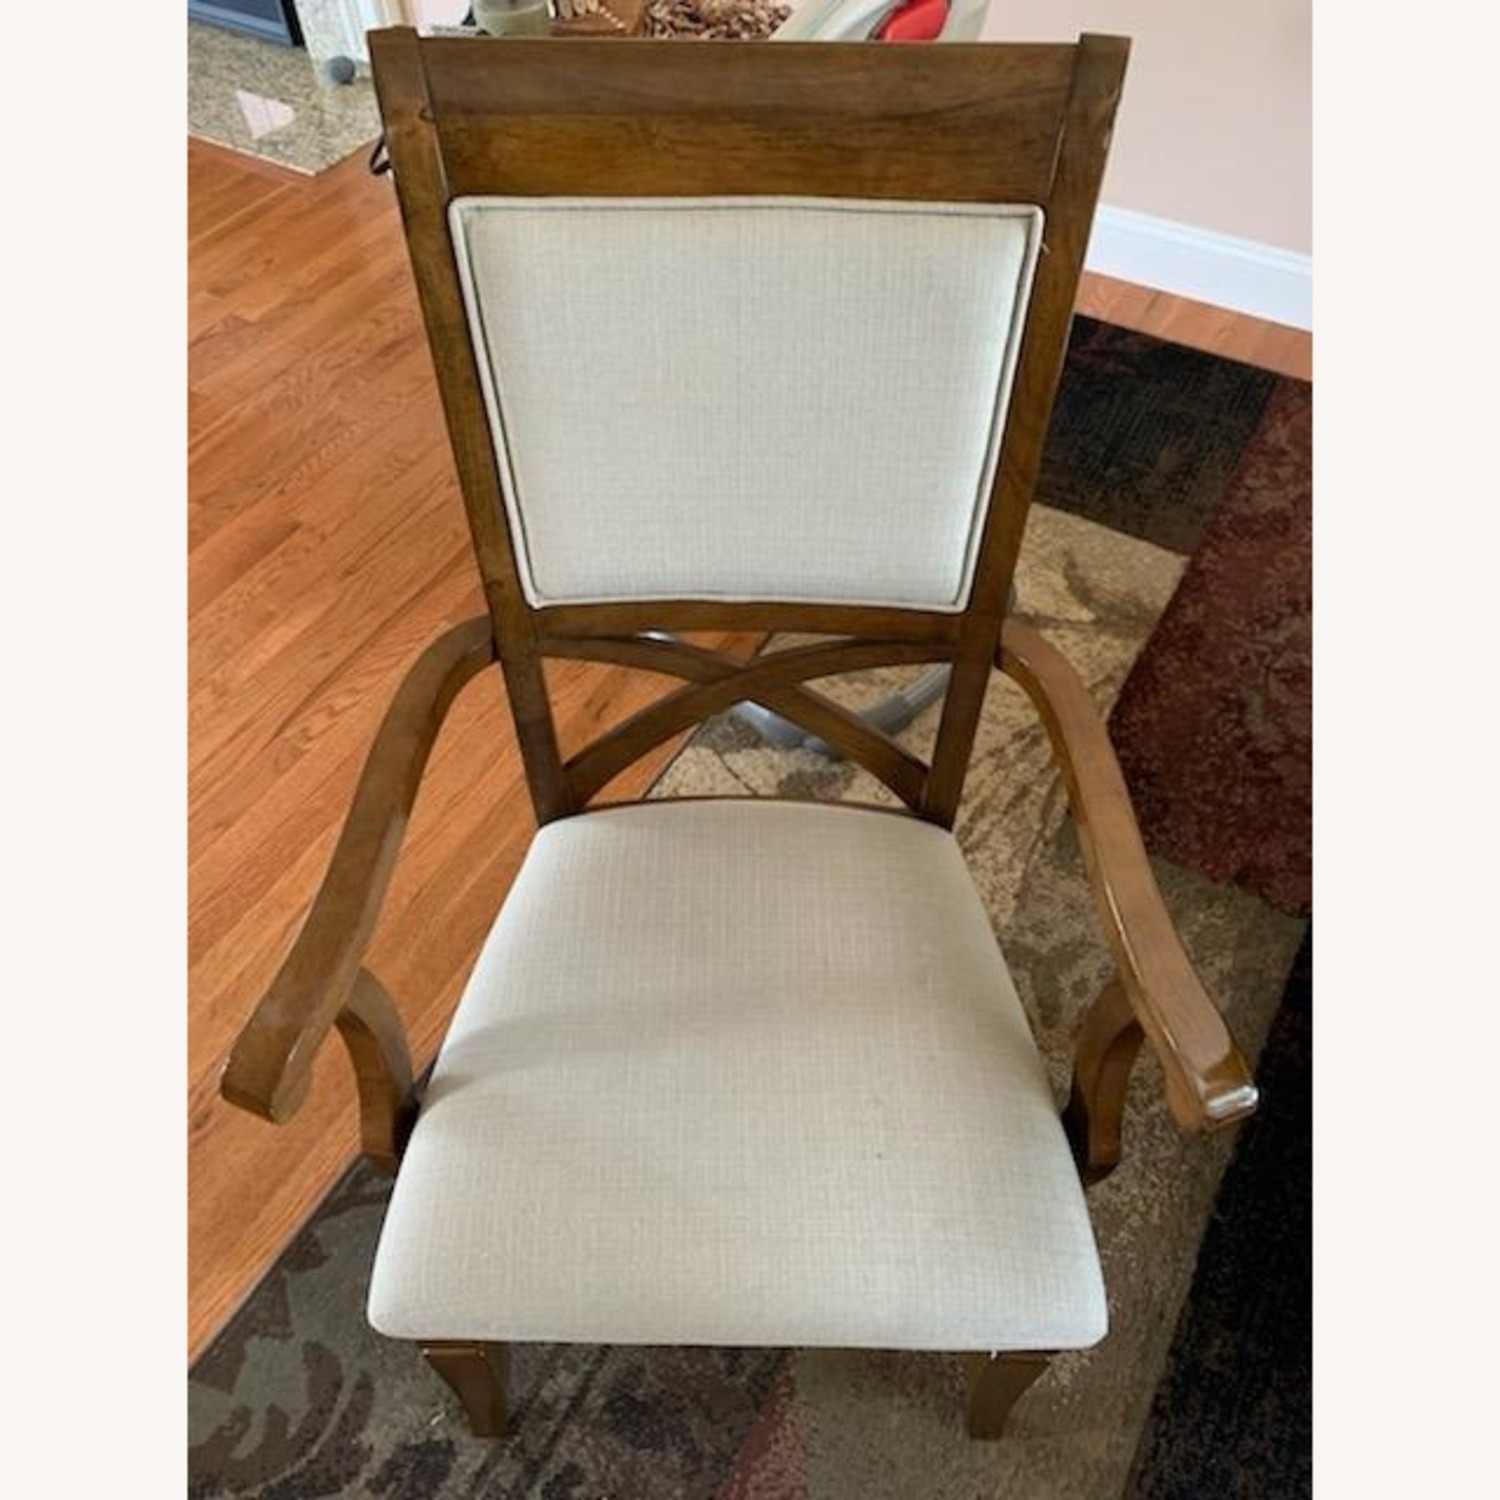 Raymour & Flanigan Dining Table set with 6 chairs - image-4